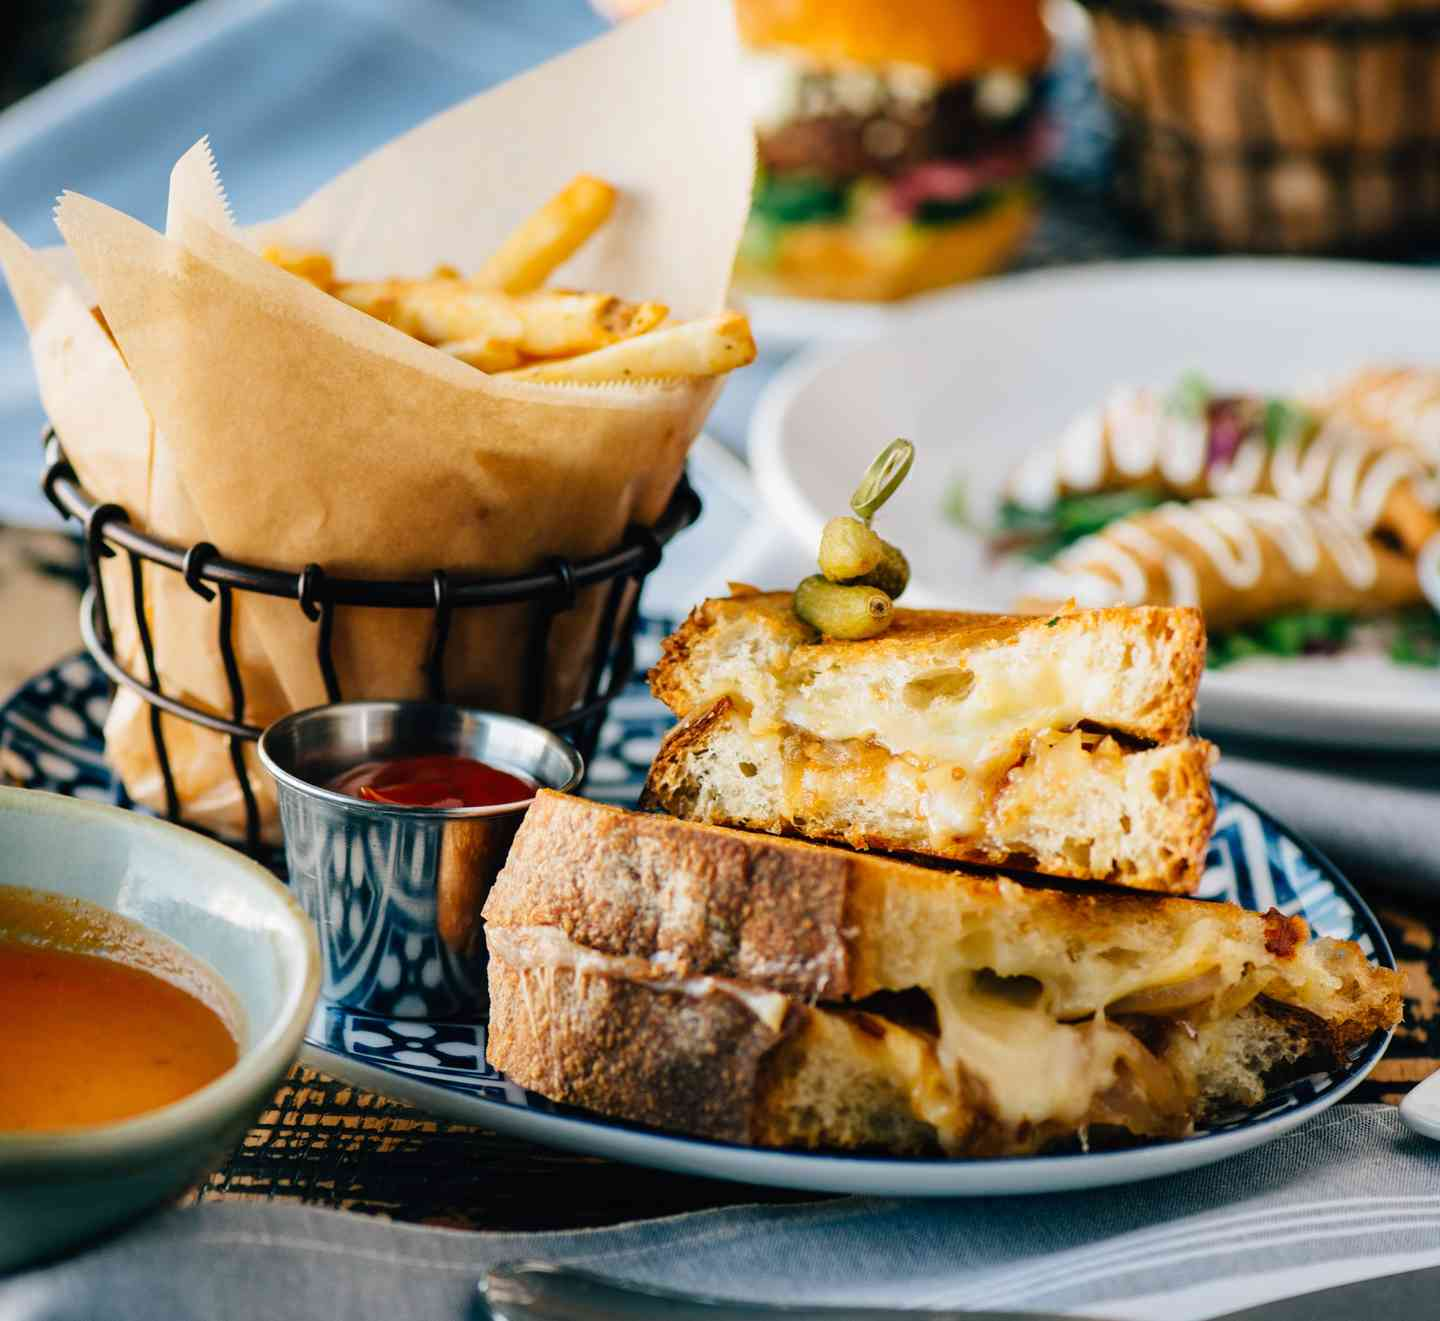 Fancy grilled cheese with fries